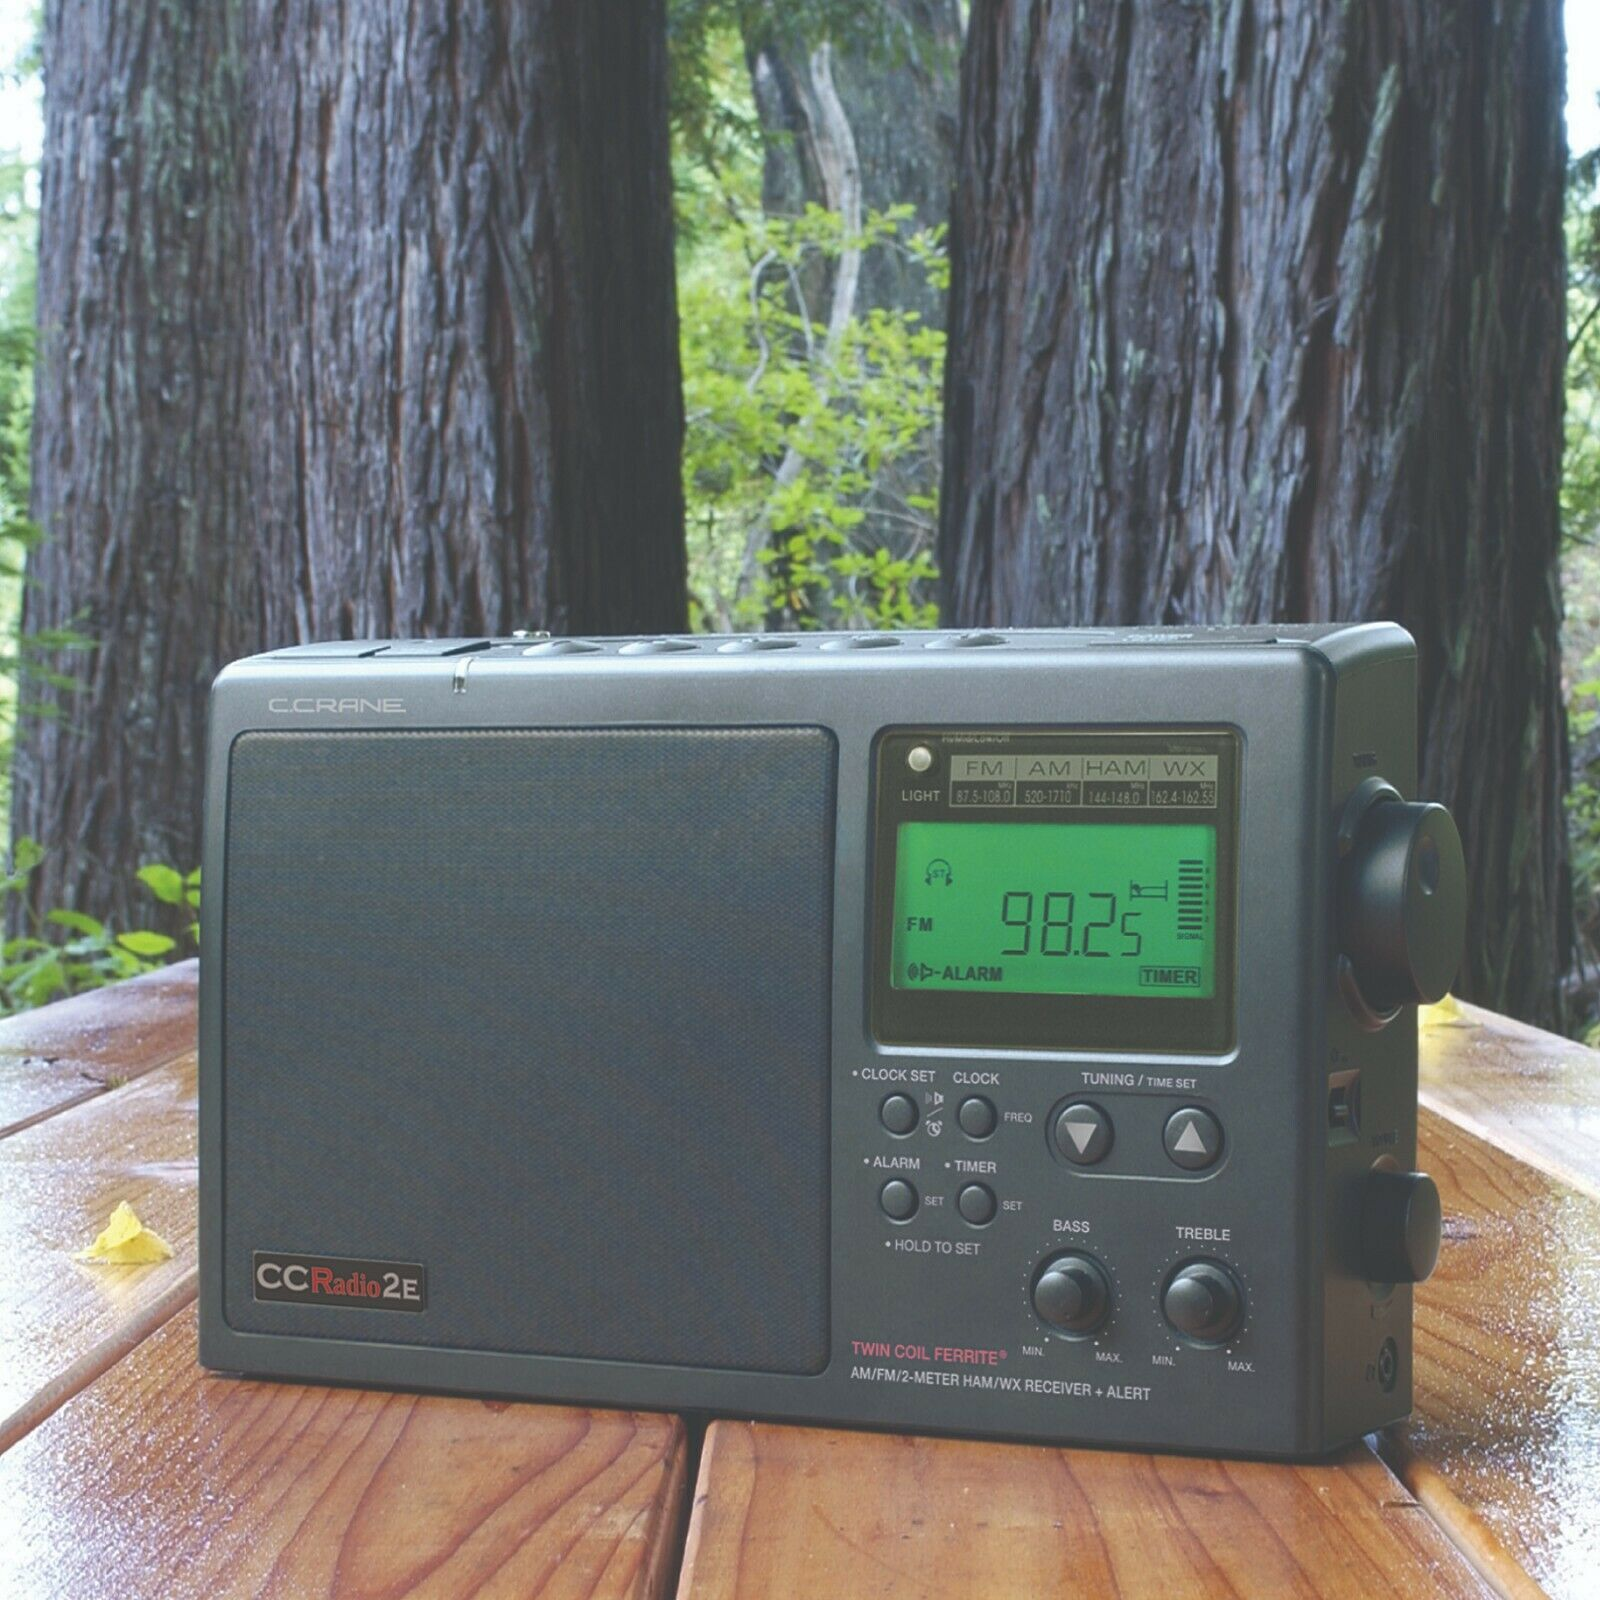 C. Crane CCRadio-2E Enhanced Portable AM FM Weather and 2-Me